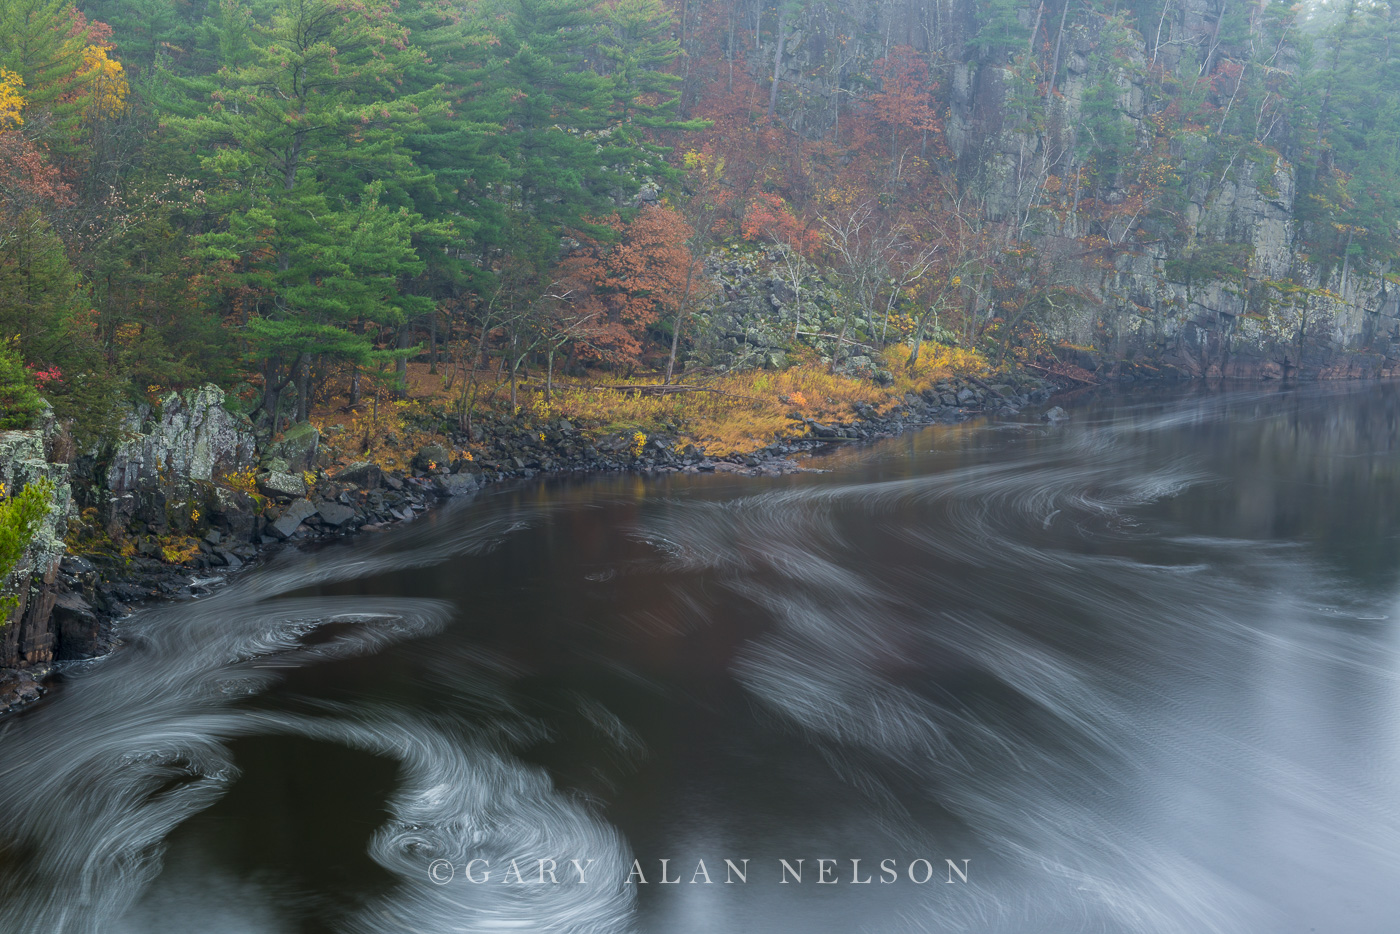 Fog and swirling water along the Dalles of the St. Croix National Scenic River, Minesota/Wisconsin